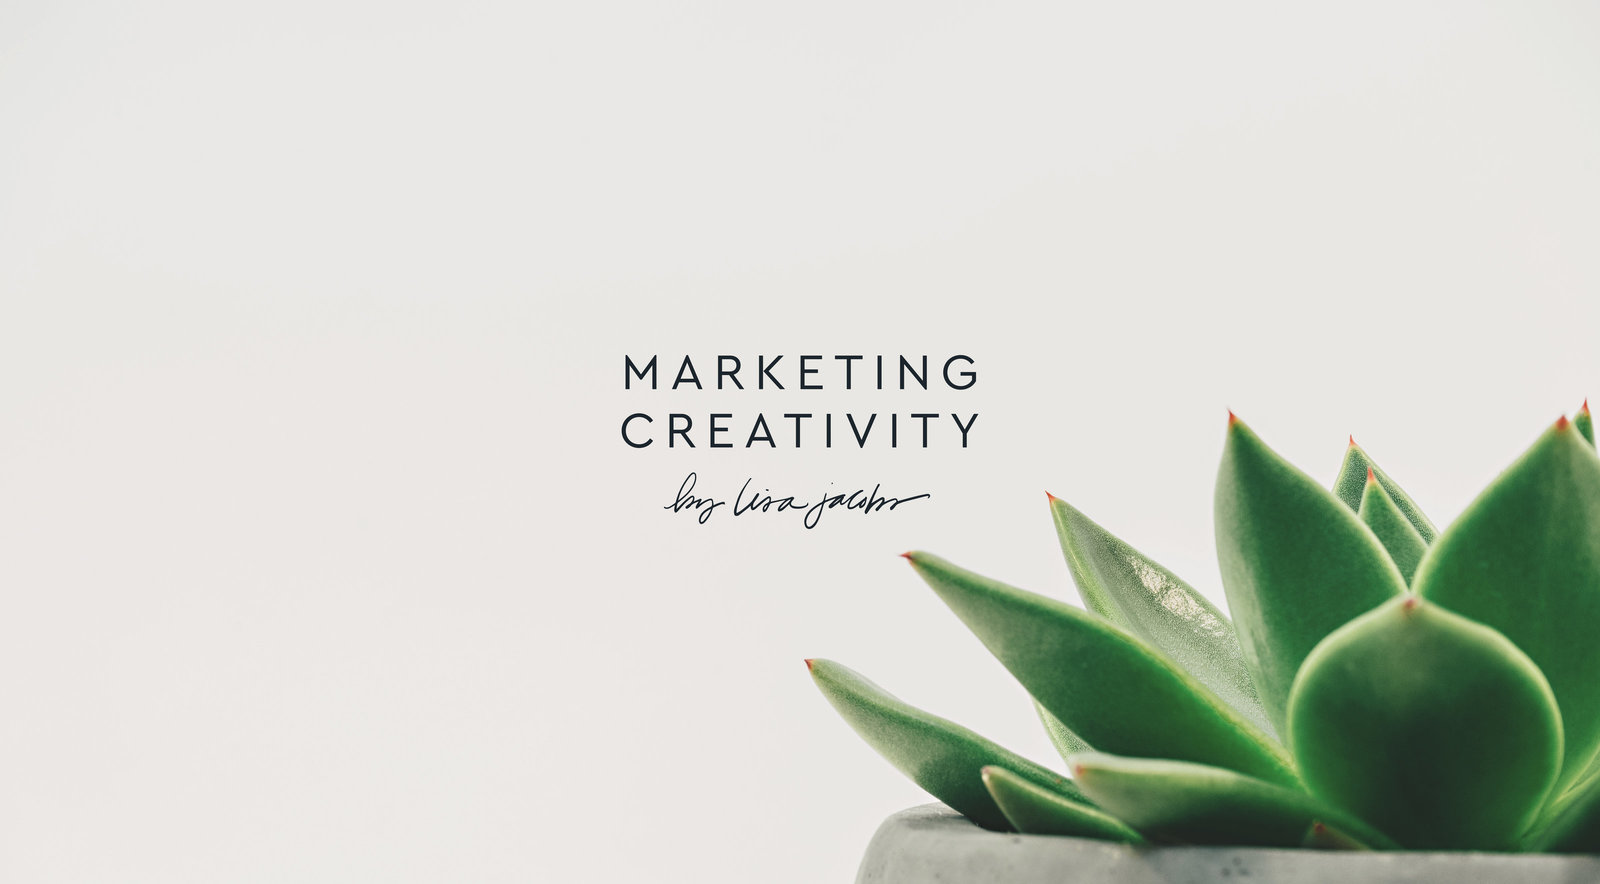 marketing-creativity-header